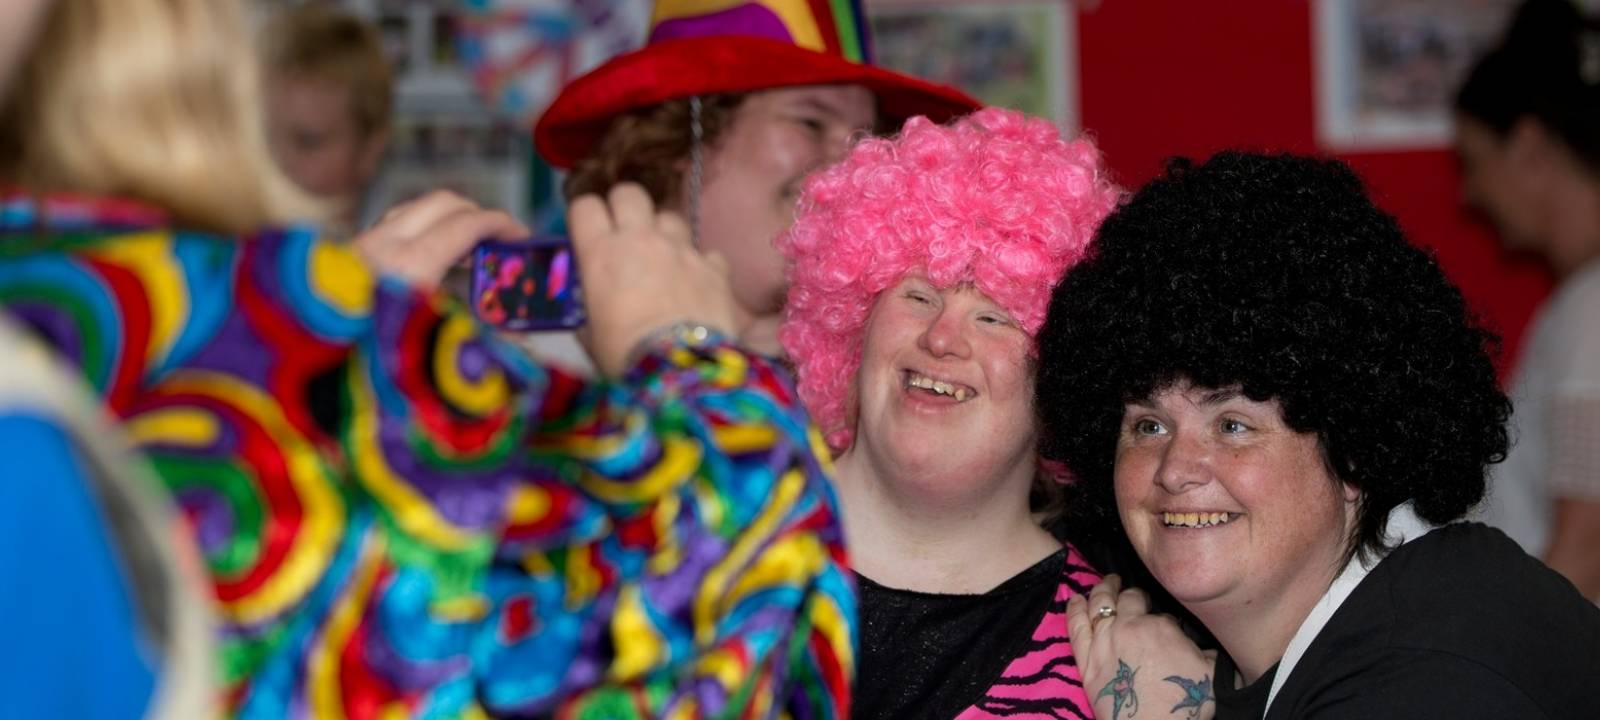 Learning disability dating agency manchester